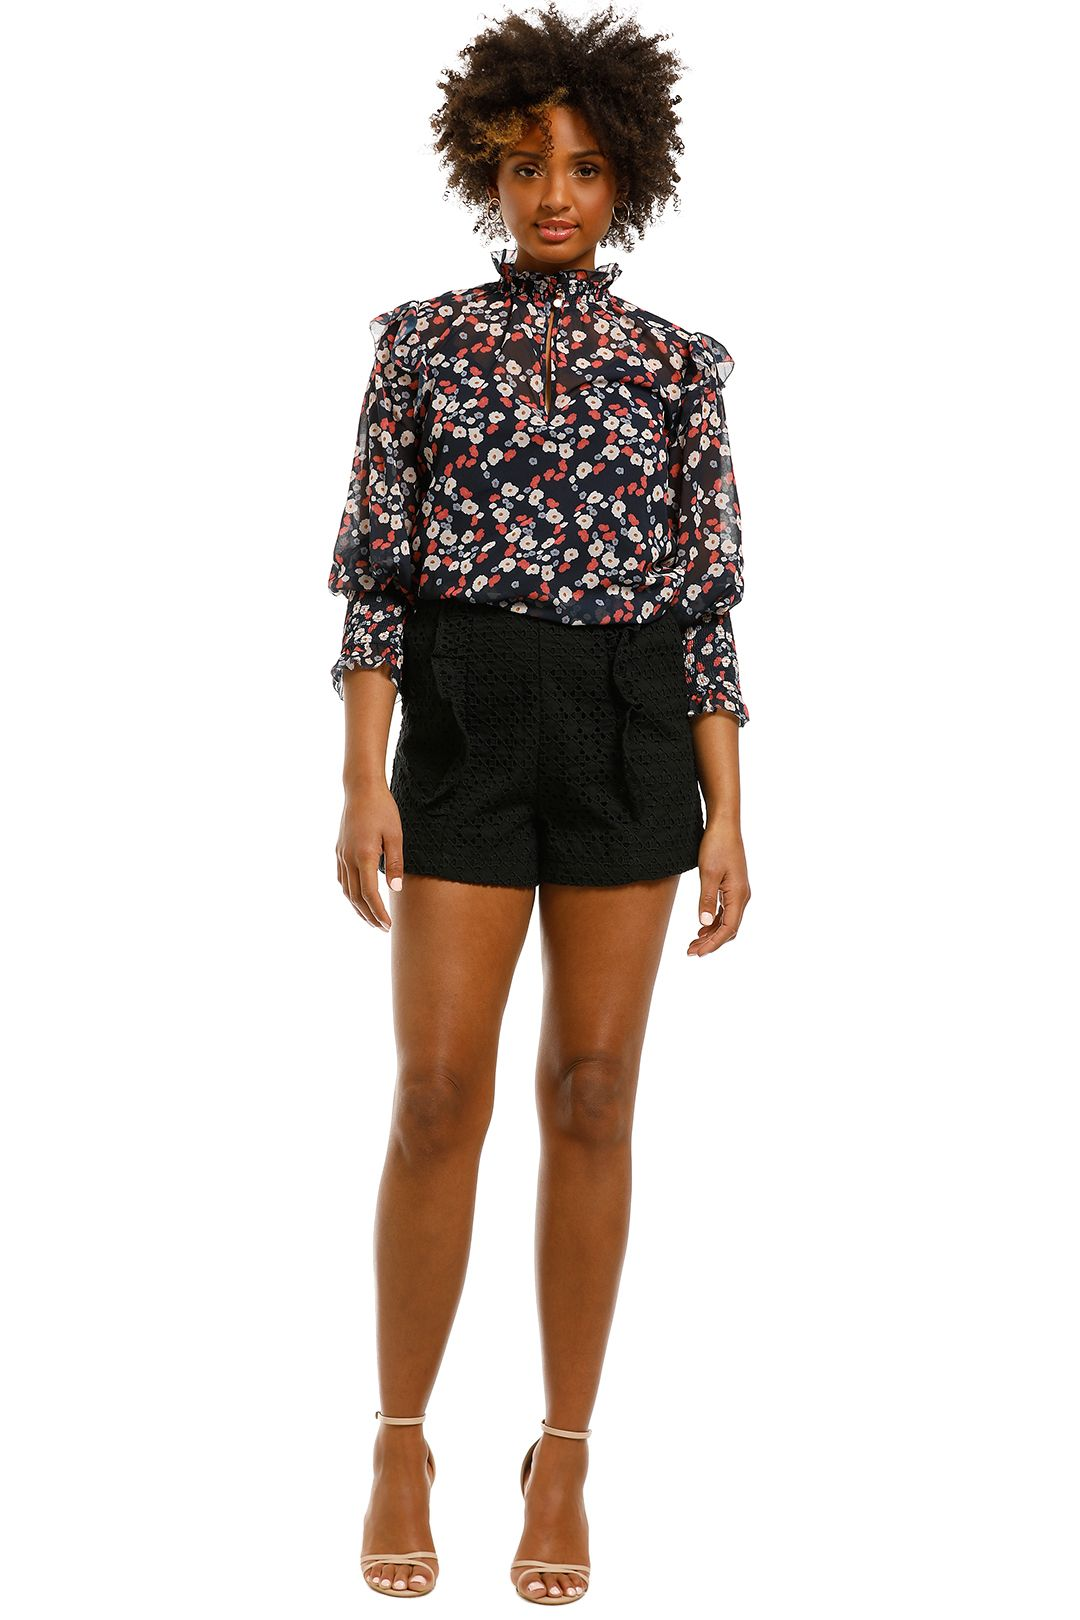 Sheike-Lulu-Lace-Short-Black-Front